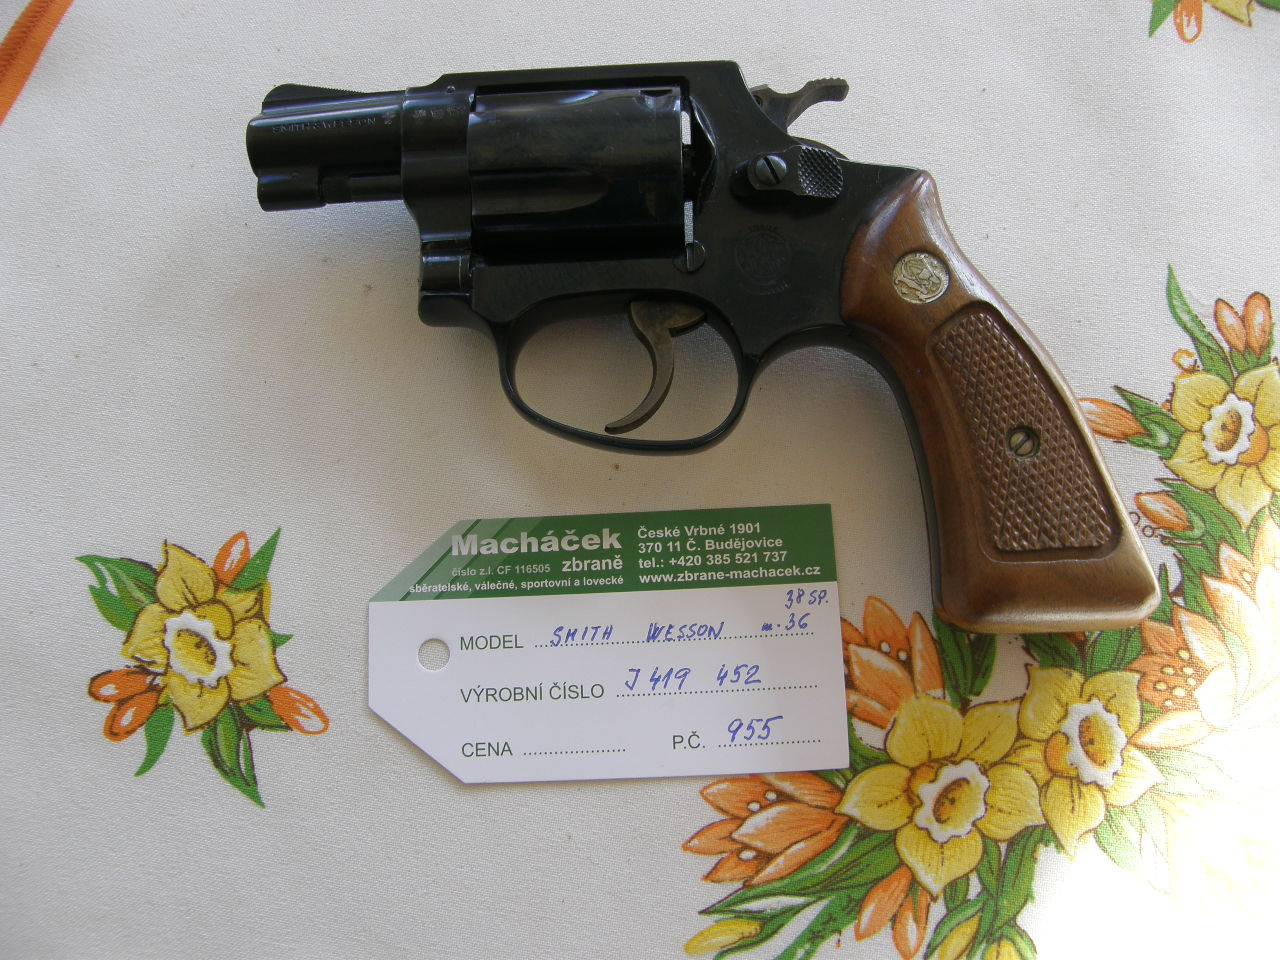 Revolver Smith Wesson Mod. 36 v.č.J 419452 r. 38 Sp.